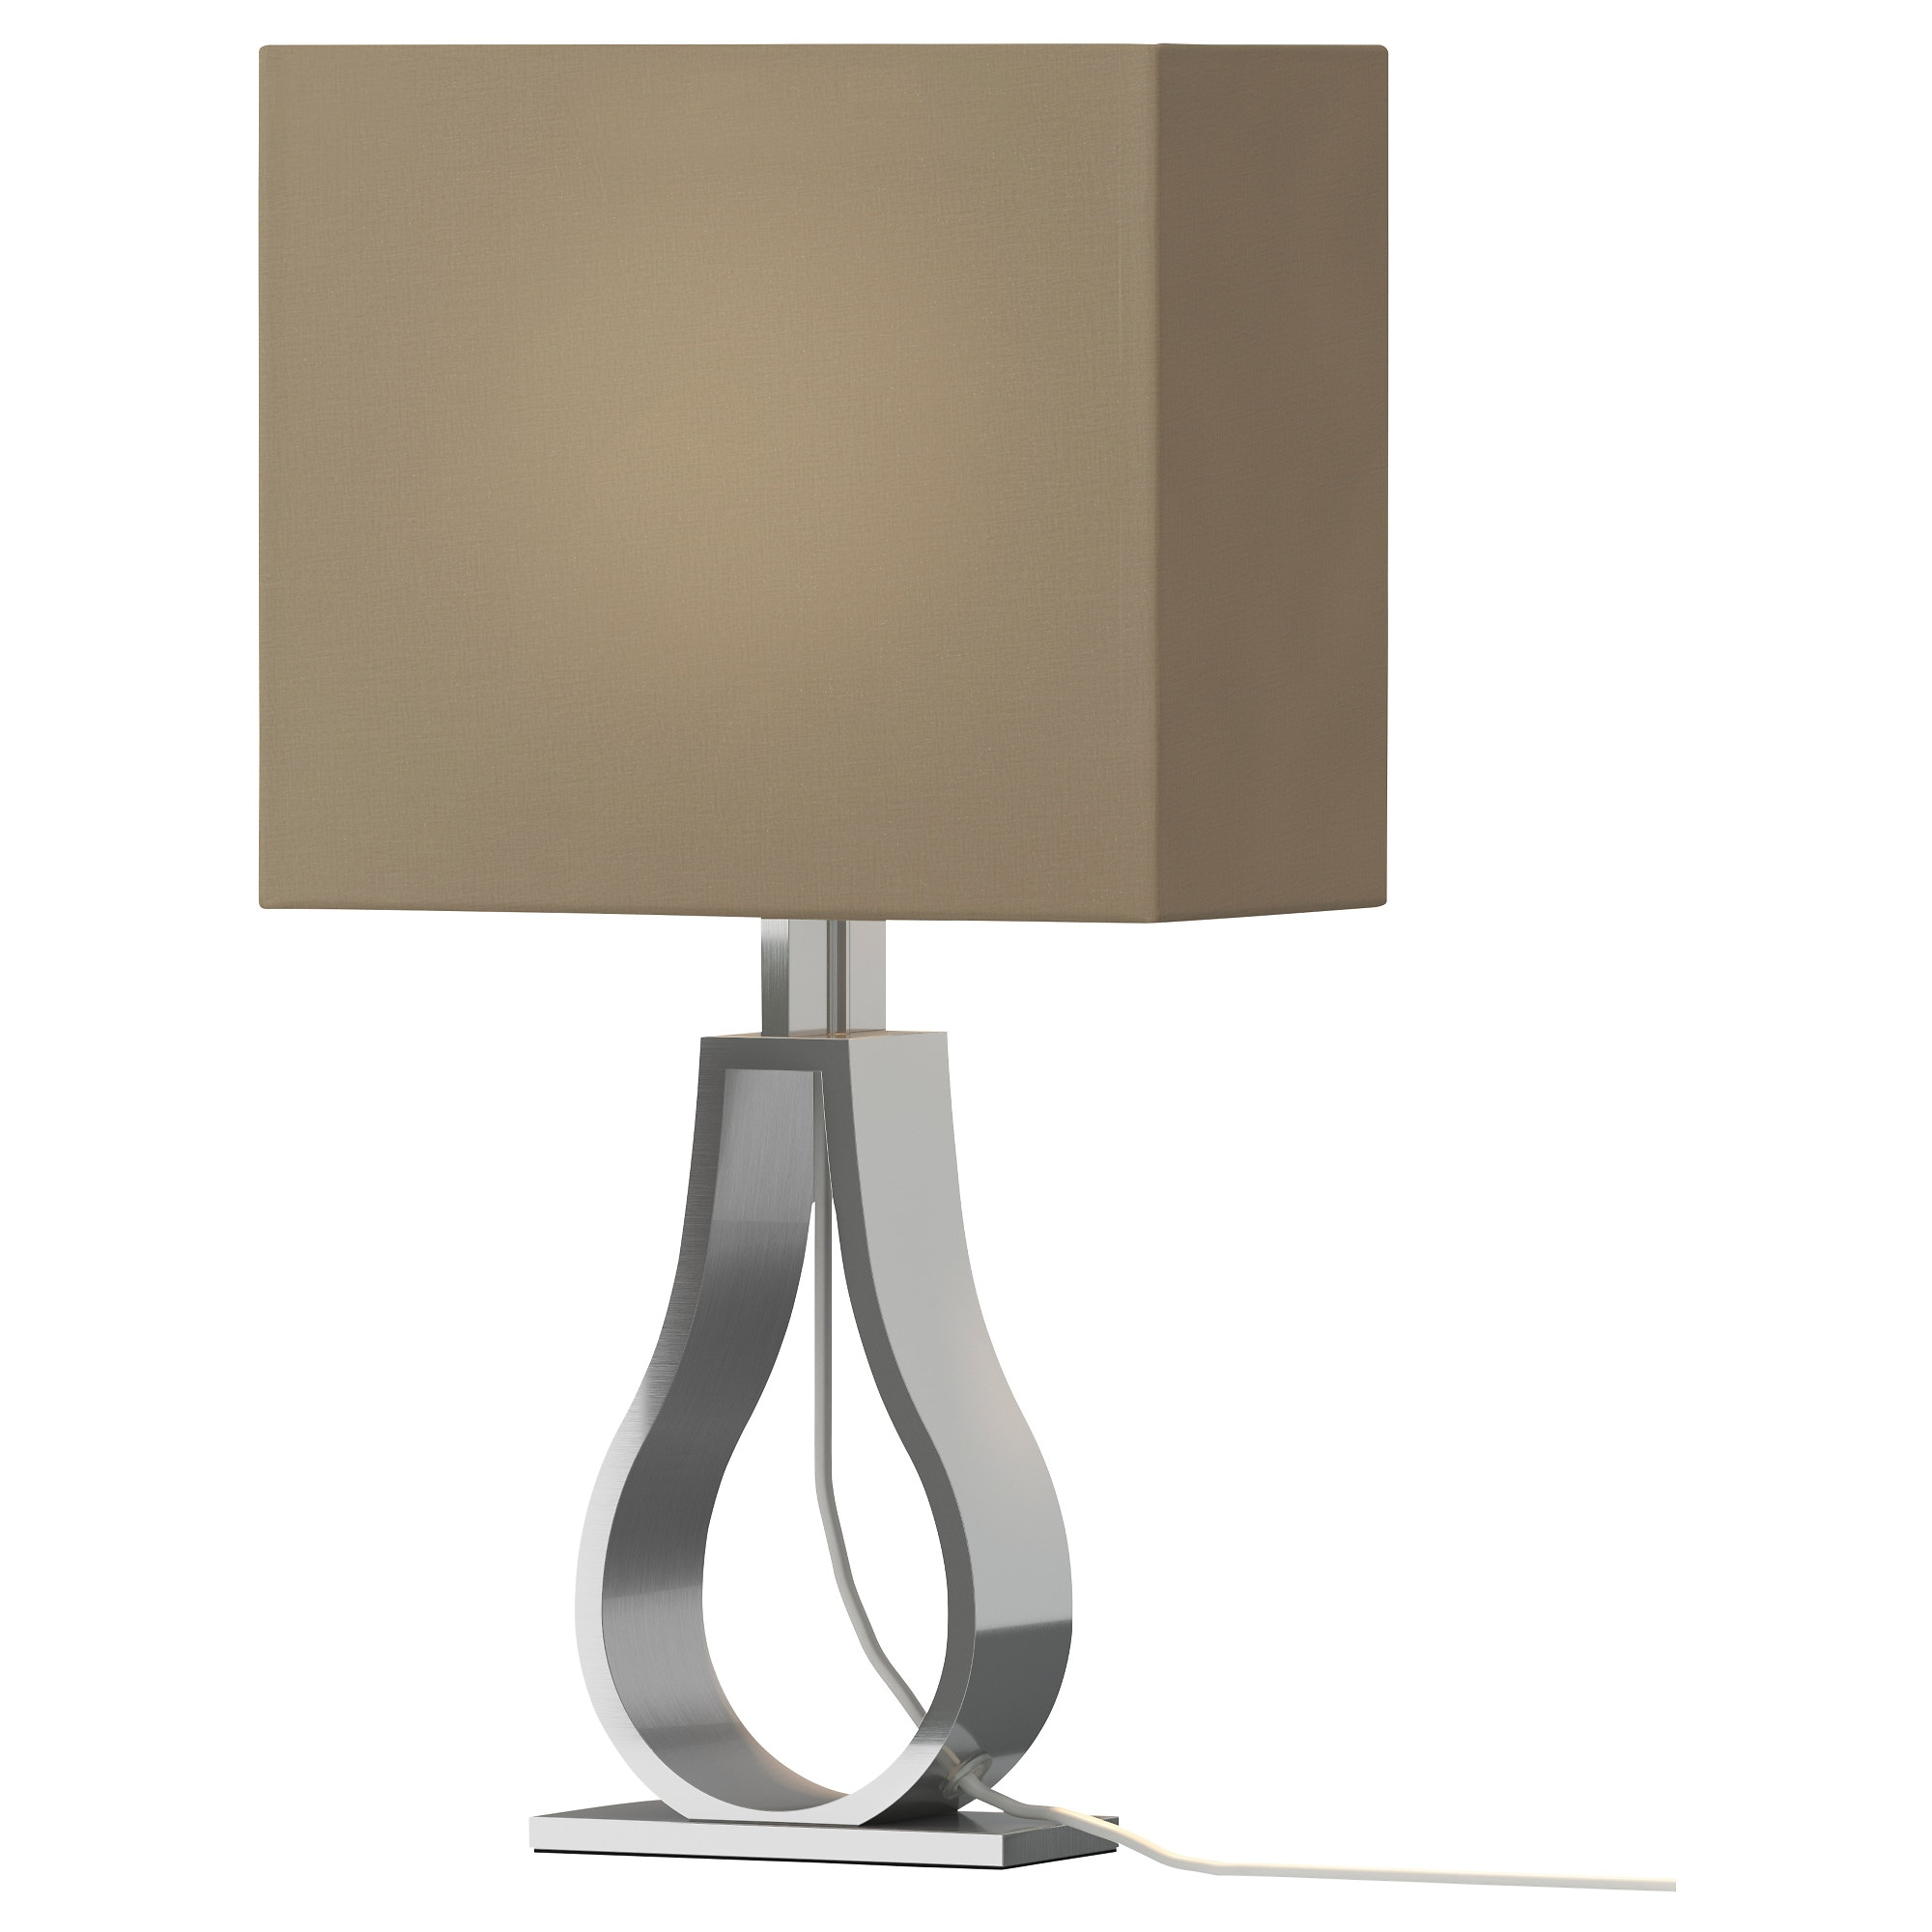 klabb table lamp with led bulb light brown shade width 9 height bedroom nightstand lamps ideas lighting models bedside